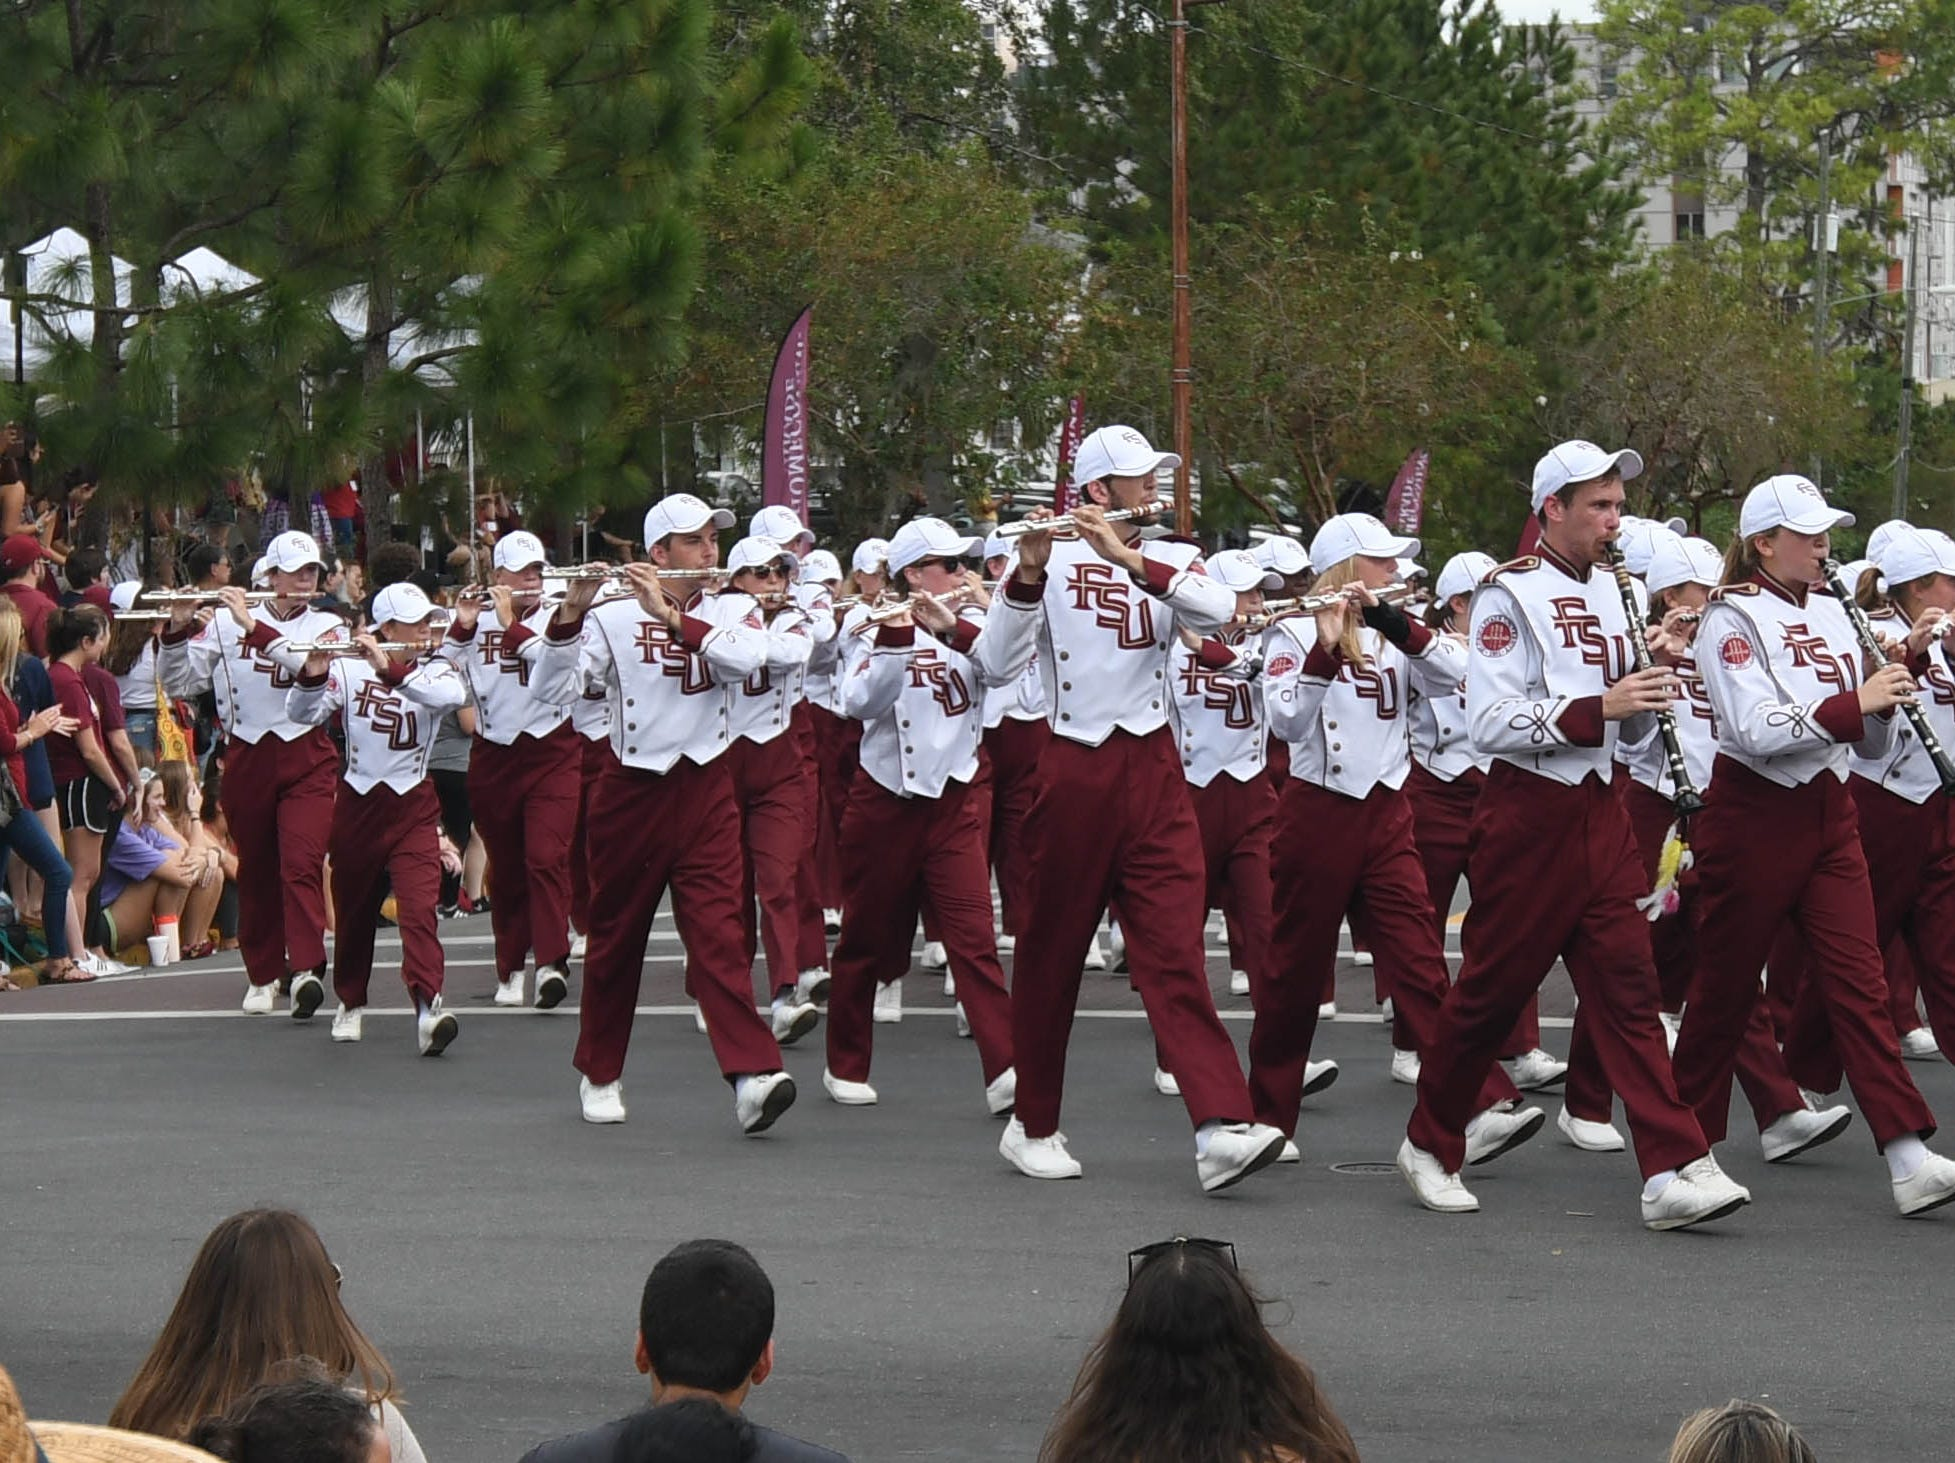 FSU's Marching Chiefs at the 2018 Homecoming Parade on October 19, 2018.